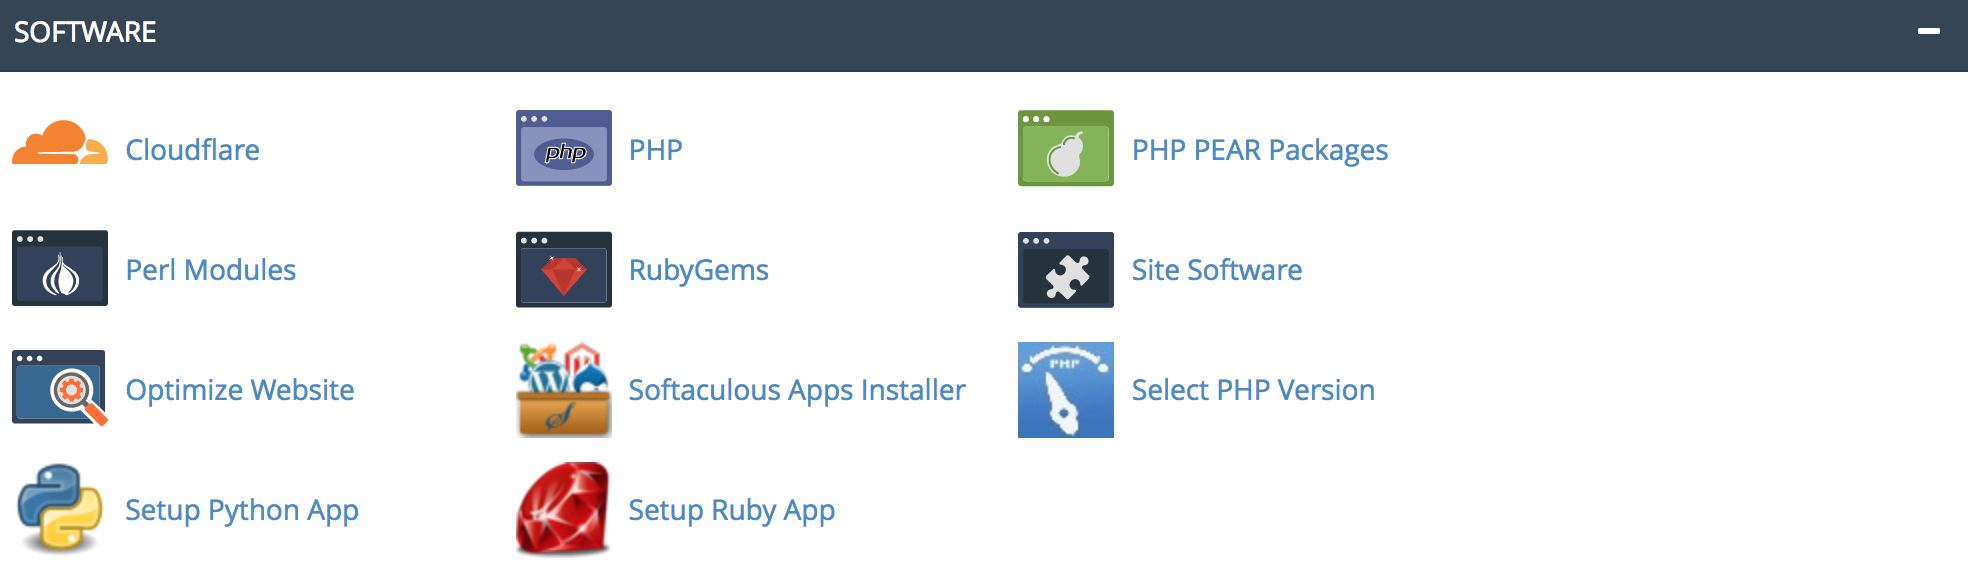 Softaculous-on-cPanel